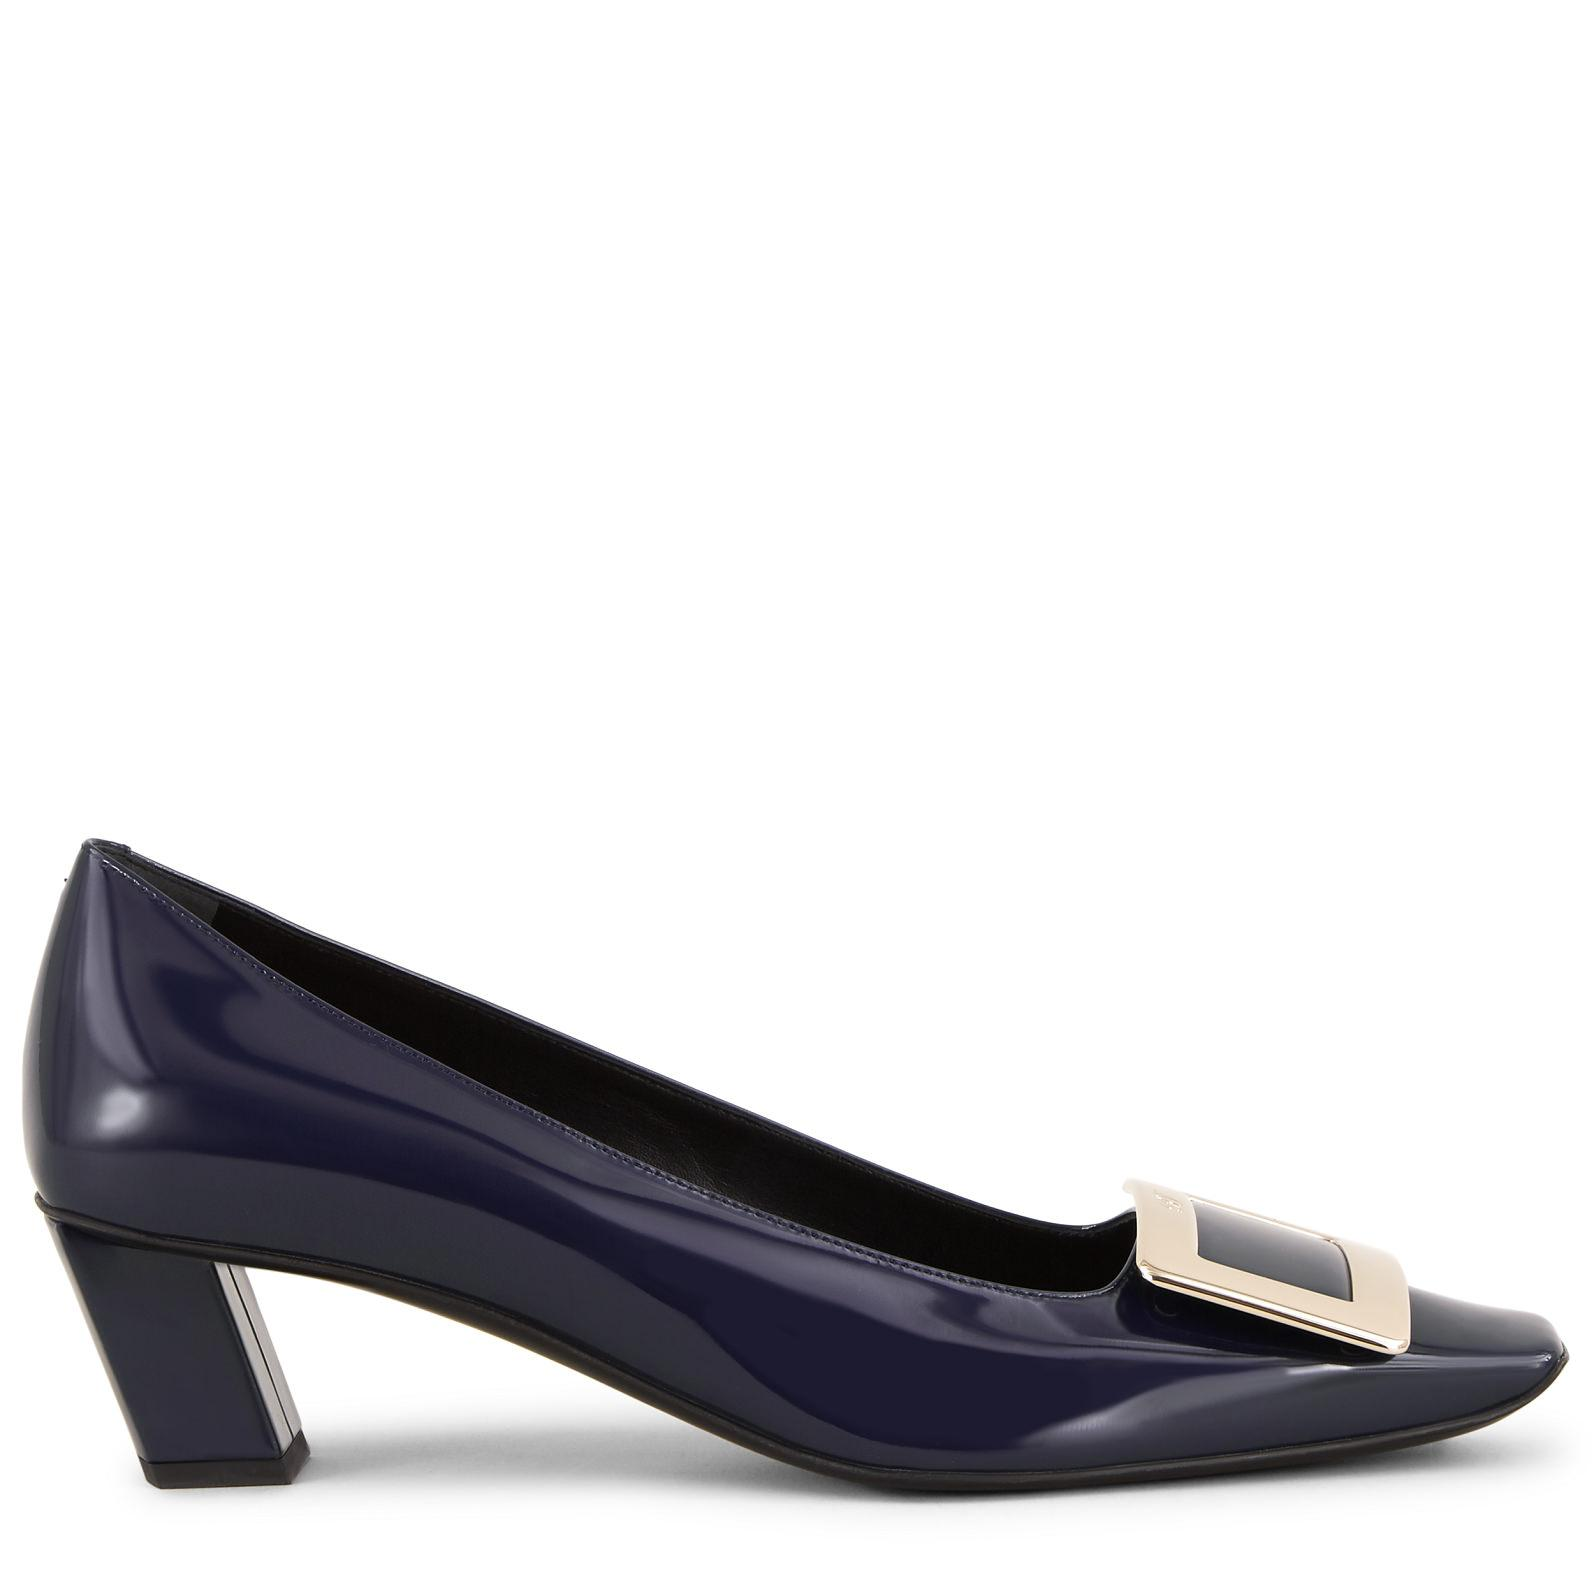 dcaa51a56 Lyst - Roger Vivier Belle Vivier Metal Buckle Pumps in Blue